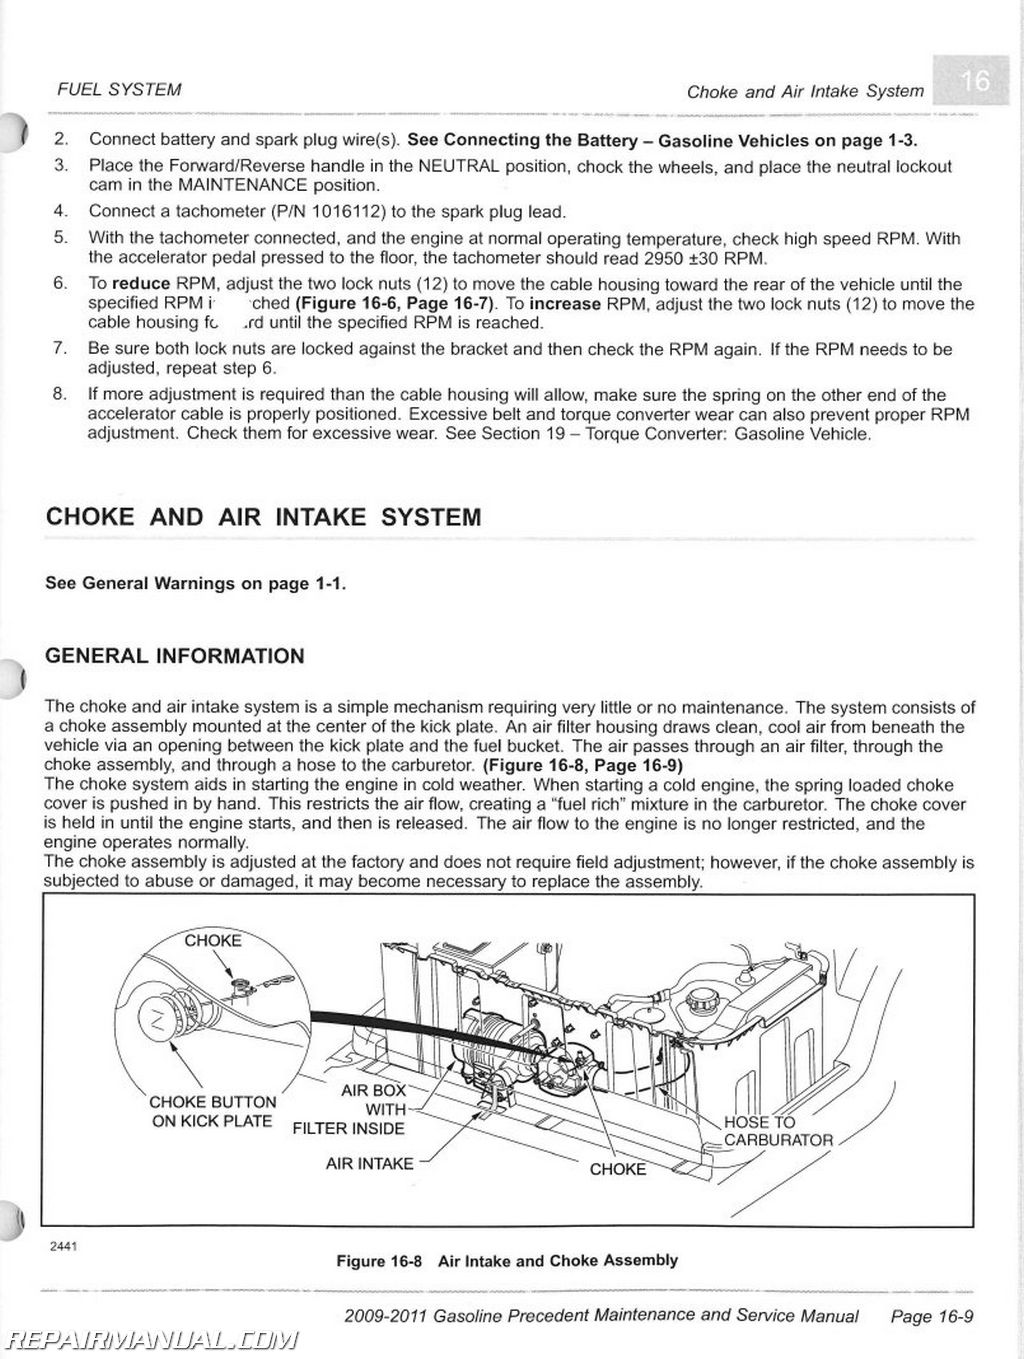 2009 2011 club car gasoline precedent maintenance and service manual rh  repairmanual com Club Car Fuel Pump 2007 Club Car Parts Diagram